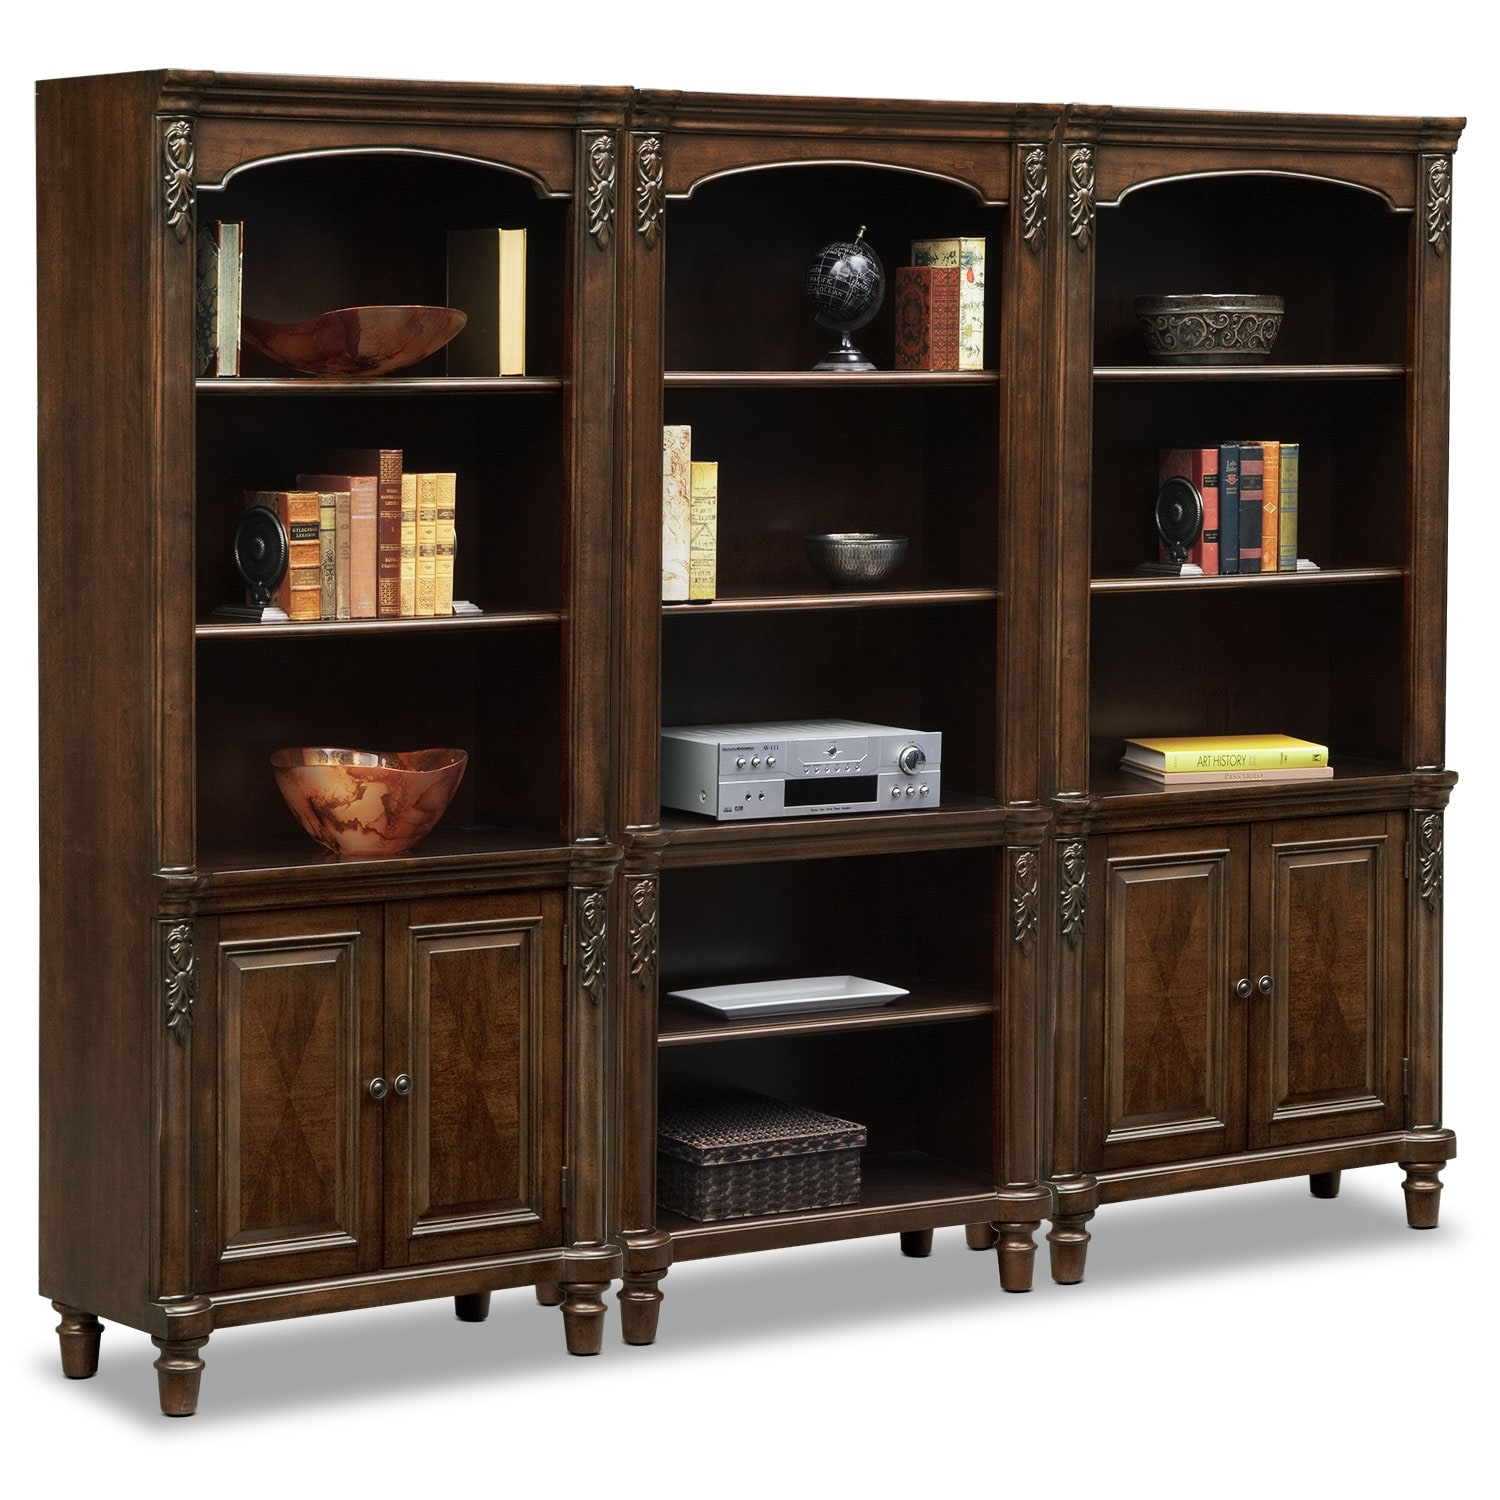 Ashland Wall Bookcase with 2 Cabinets - Cherry